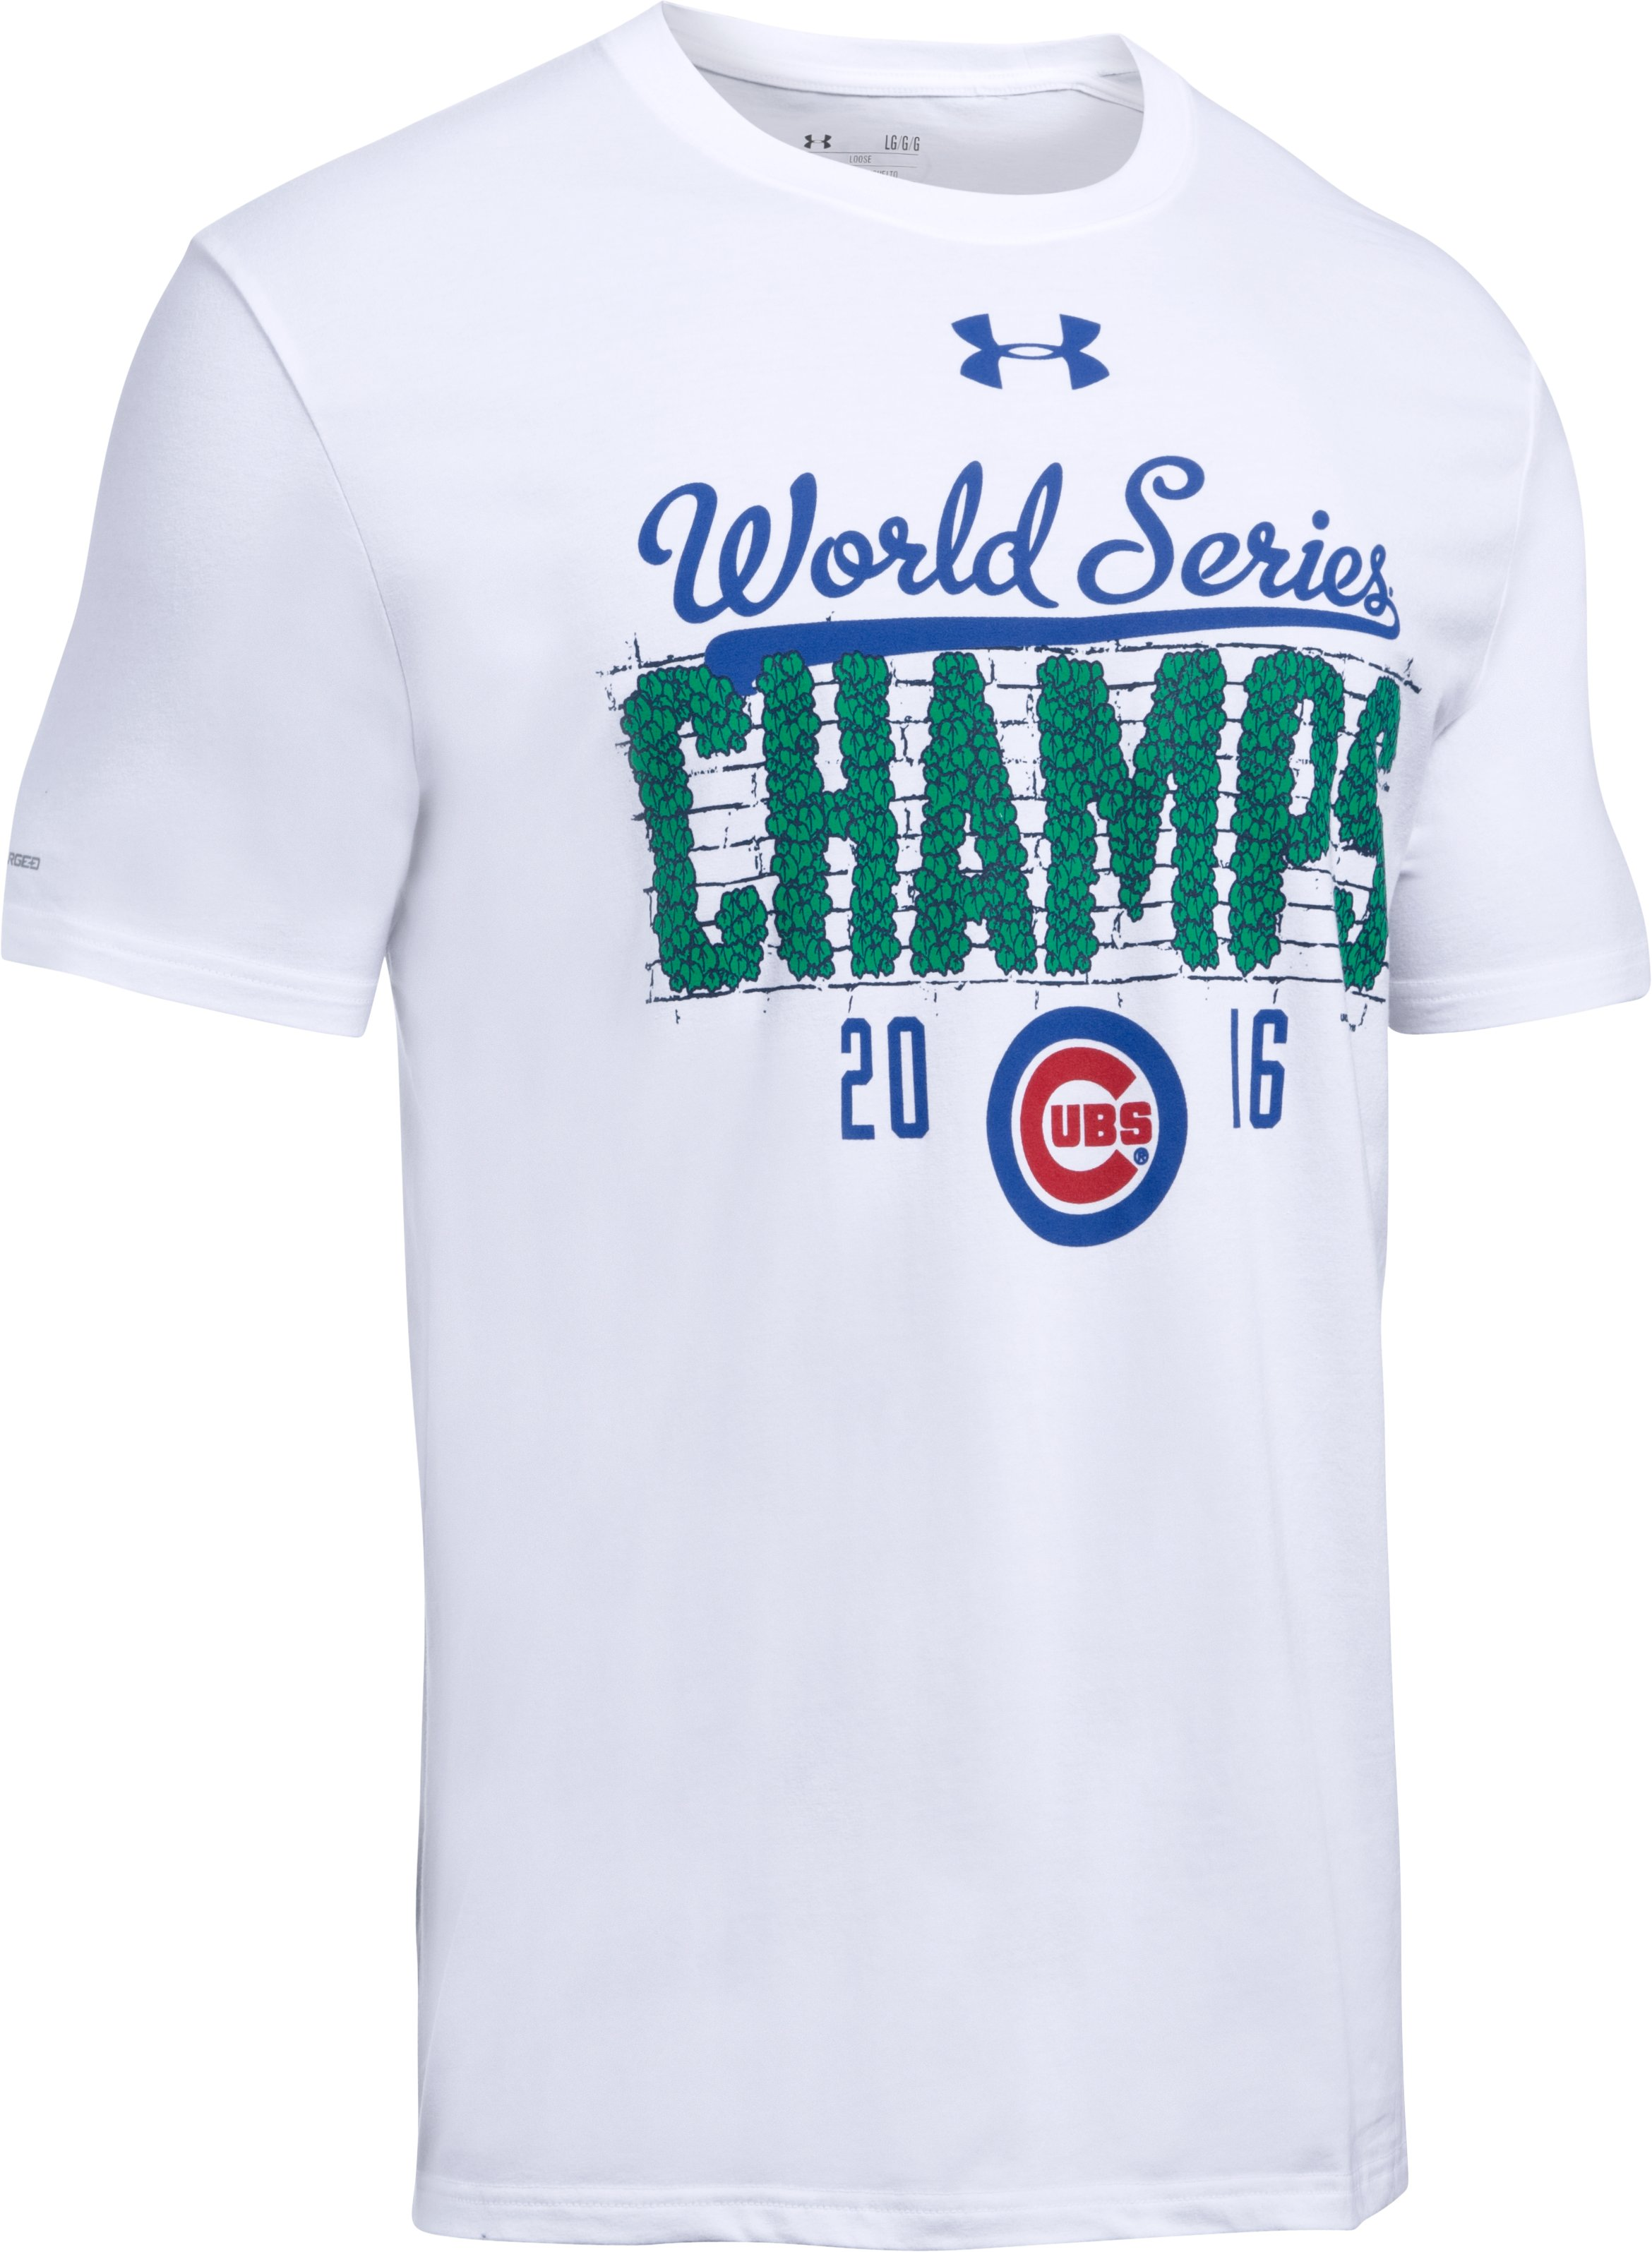 Men's Chicago Cubs Champ T-Shirt, White, undefined